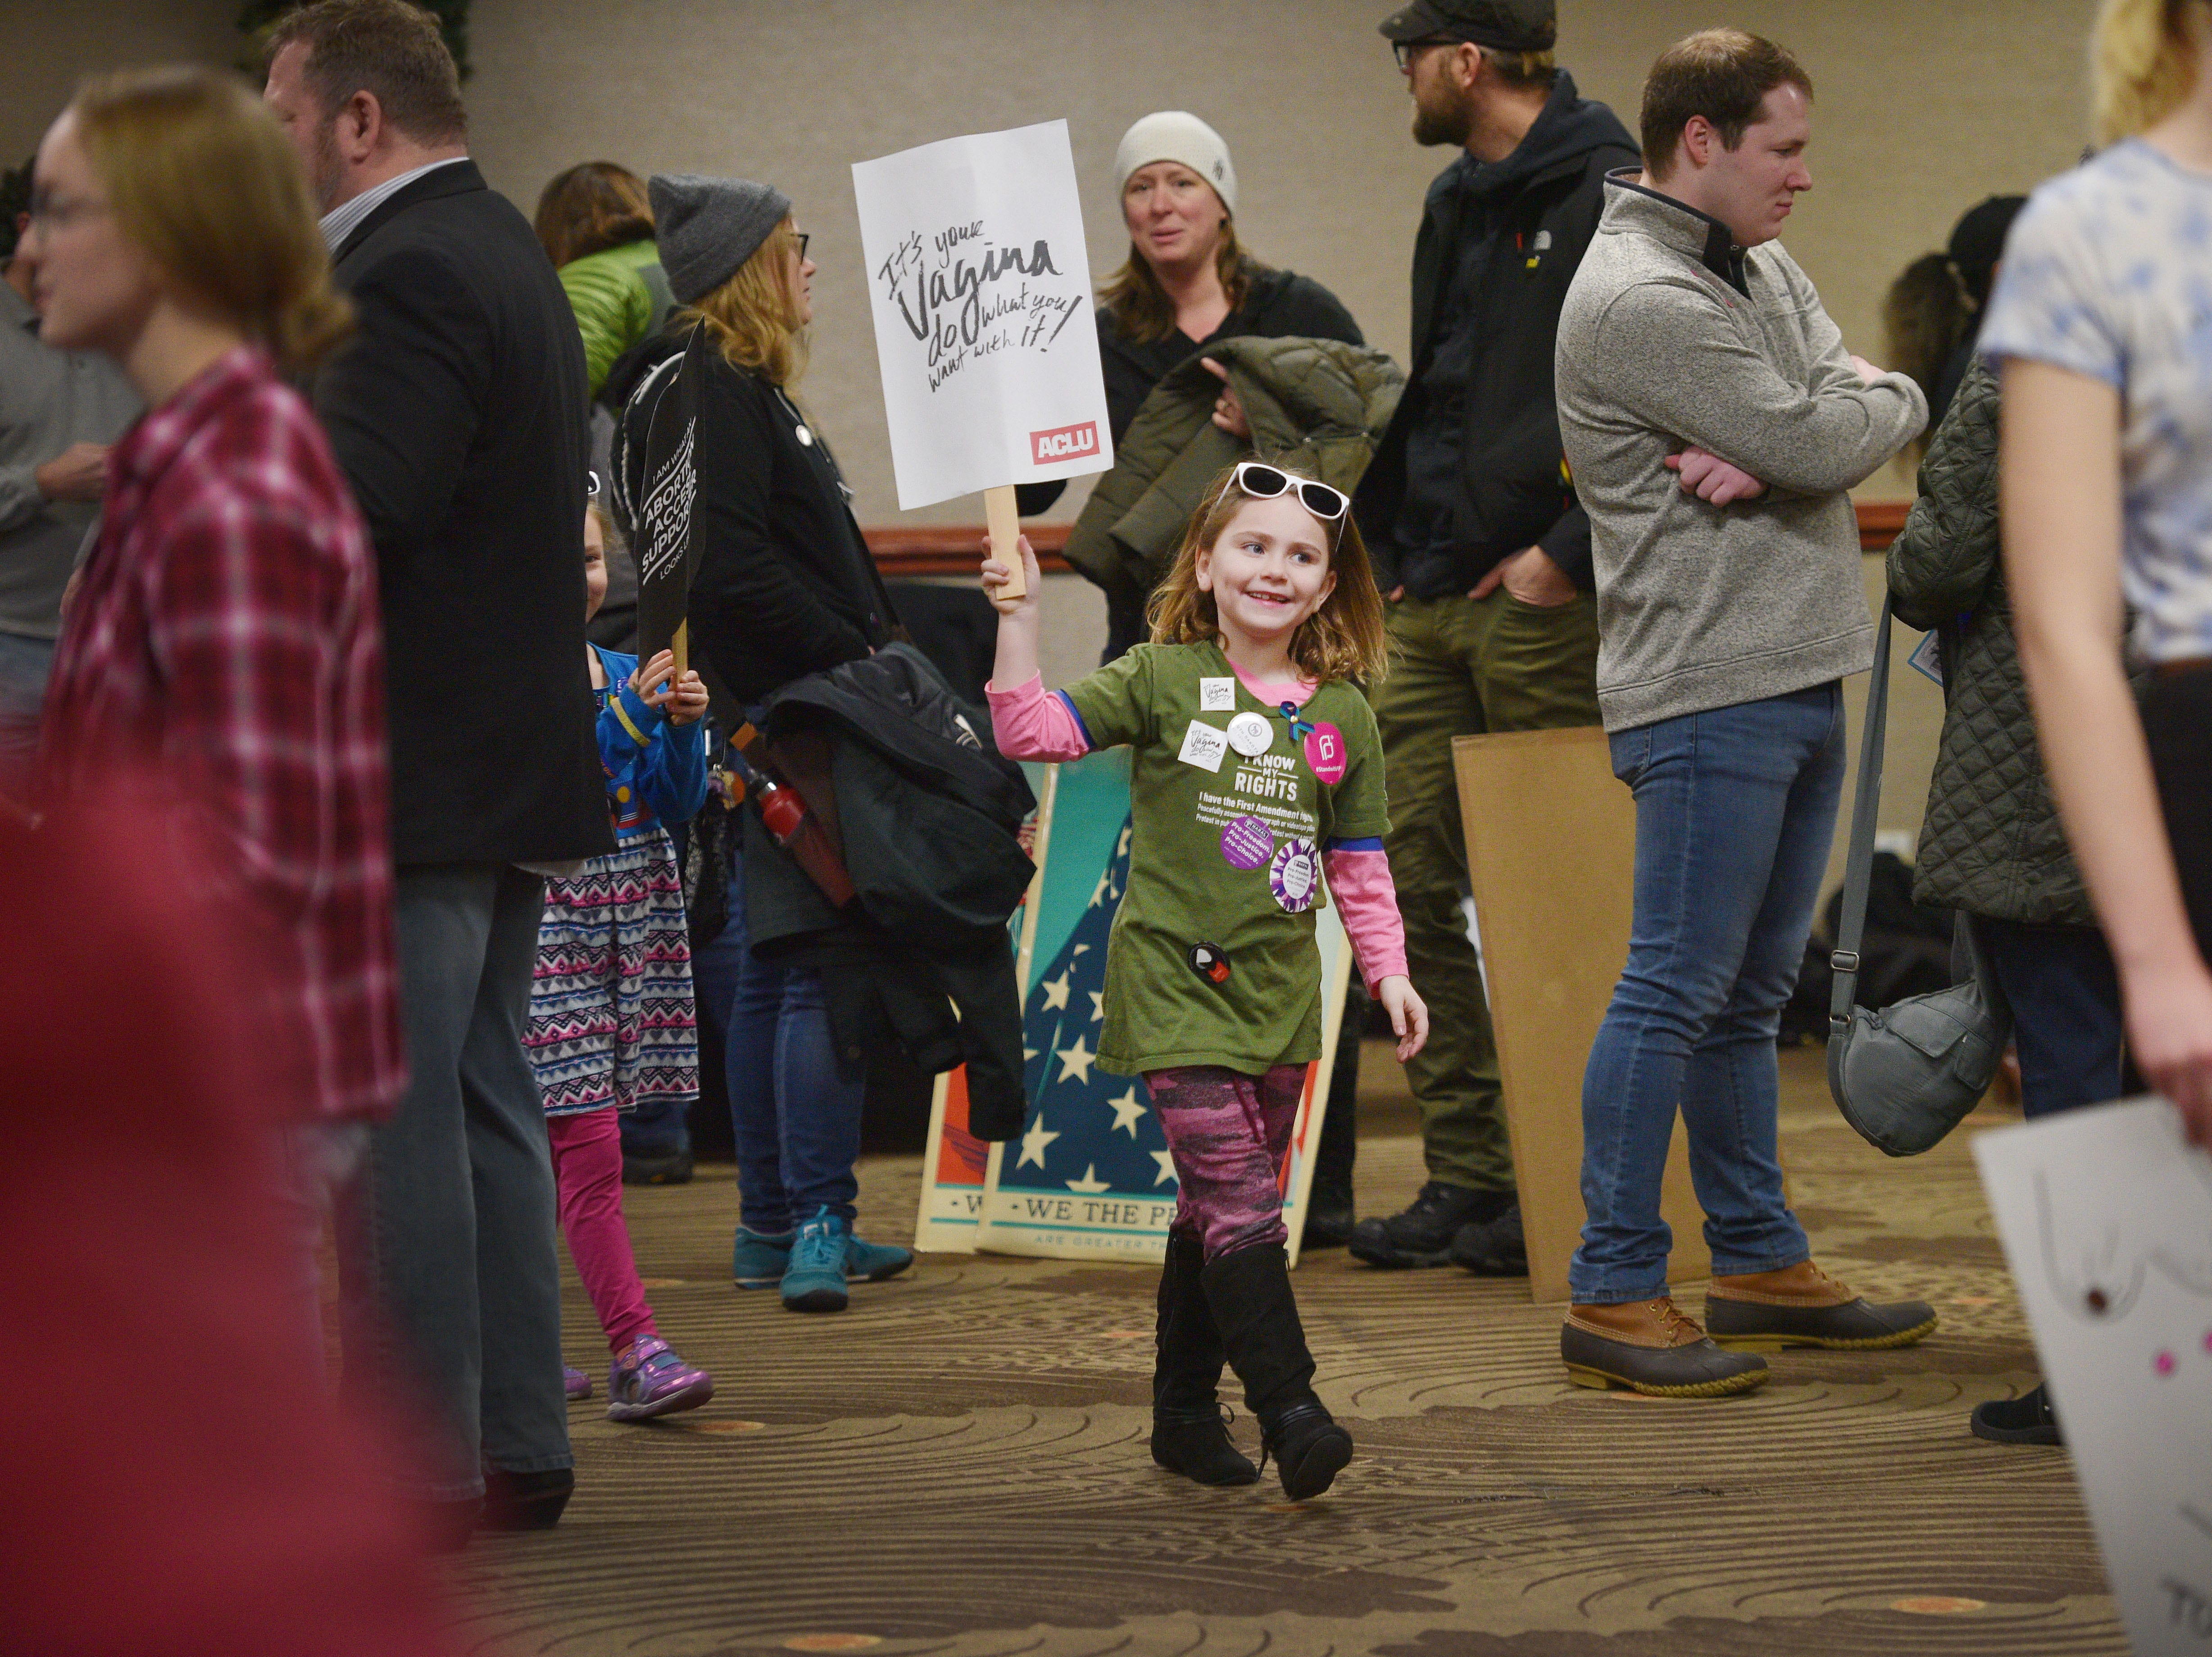 Kate Weissenberger, 7, walks through the Women's March holding an ACLU sign Saturday, Jan. 19, at the Downtown Sioux Falls Holiday Inn-City Centre in Sioux Falls.